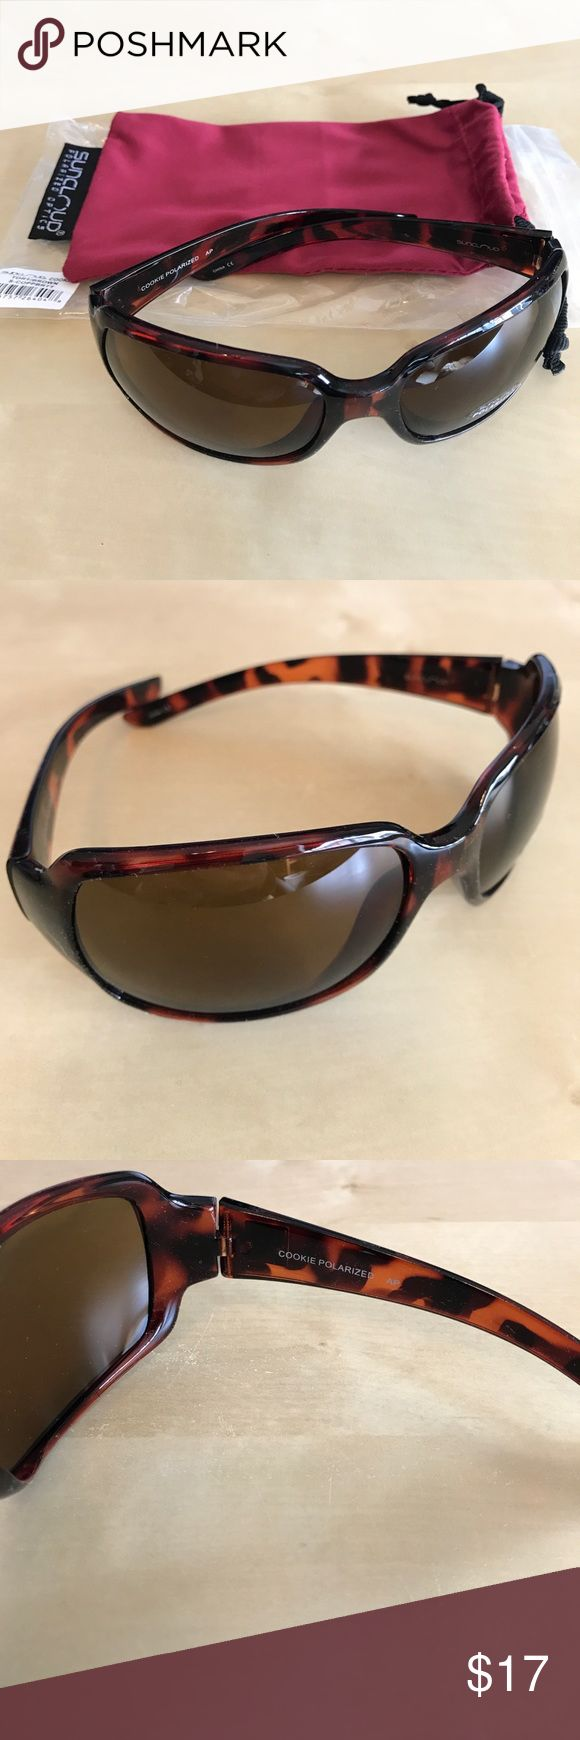 Suncloud Polarized Cookie Sunglasses Tortoise New Suncloud Polarized Cookie Sunglasses Tortoise brand new. Suncloud Accessories Sunglasses